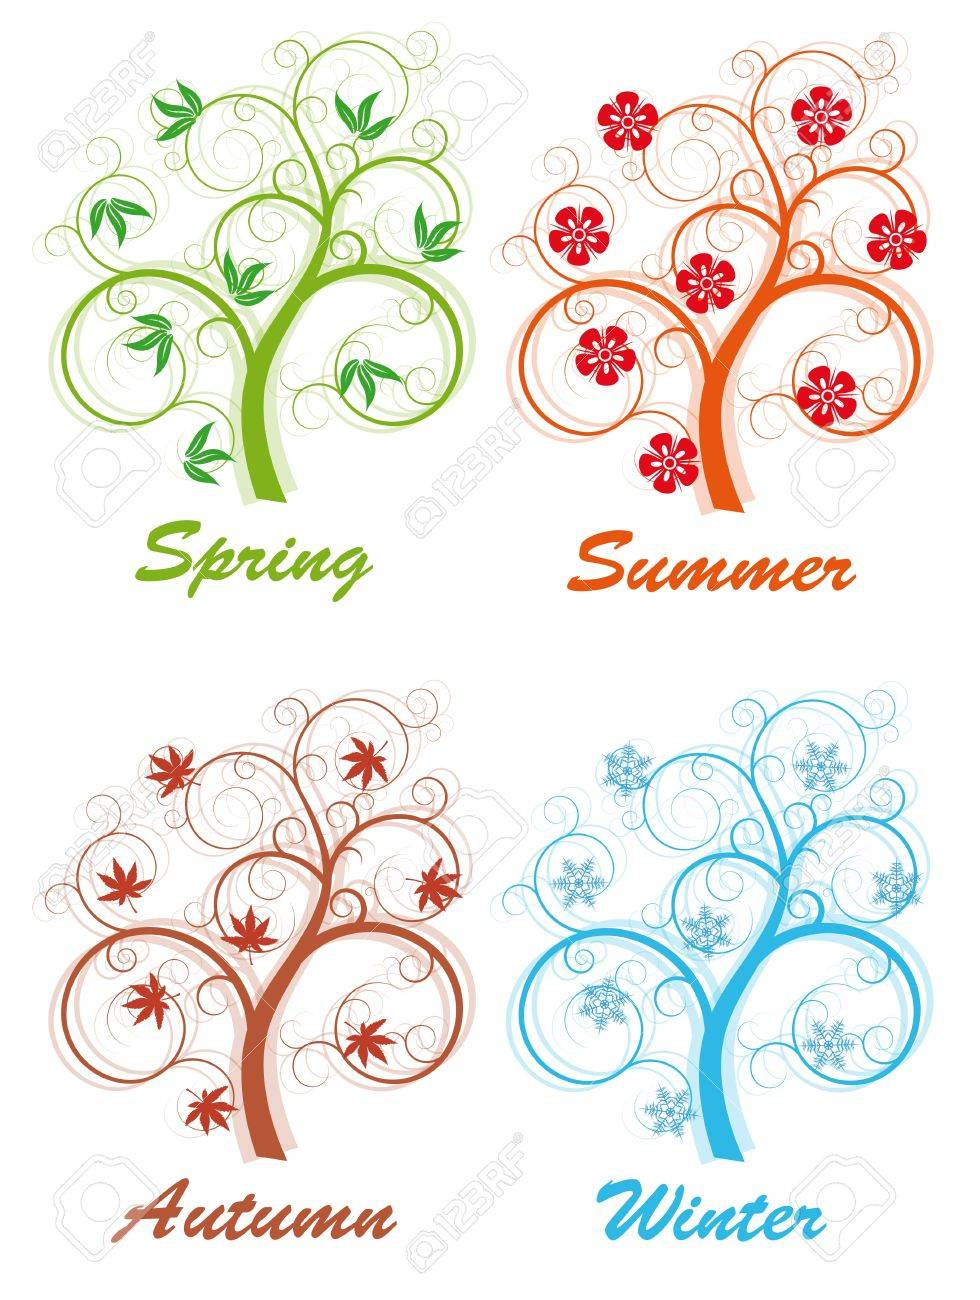 tree four seasons, spring, summer, autumn and winter Stock Vector - 11221275